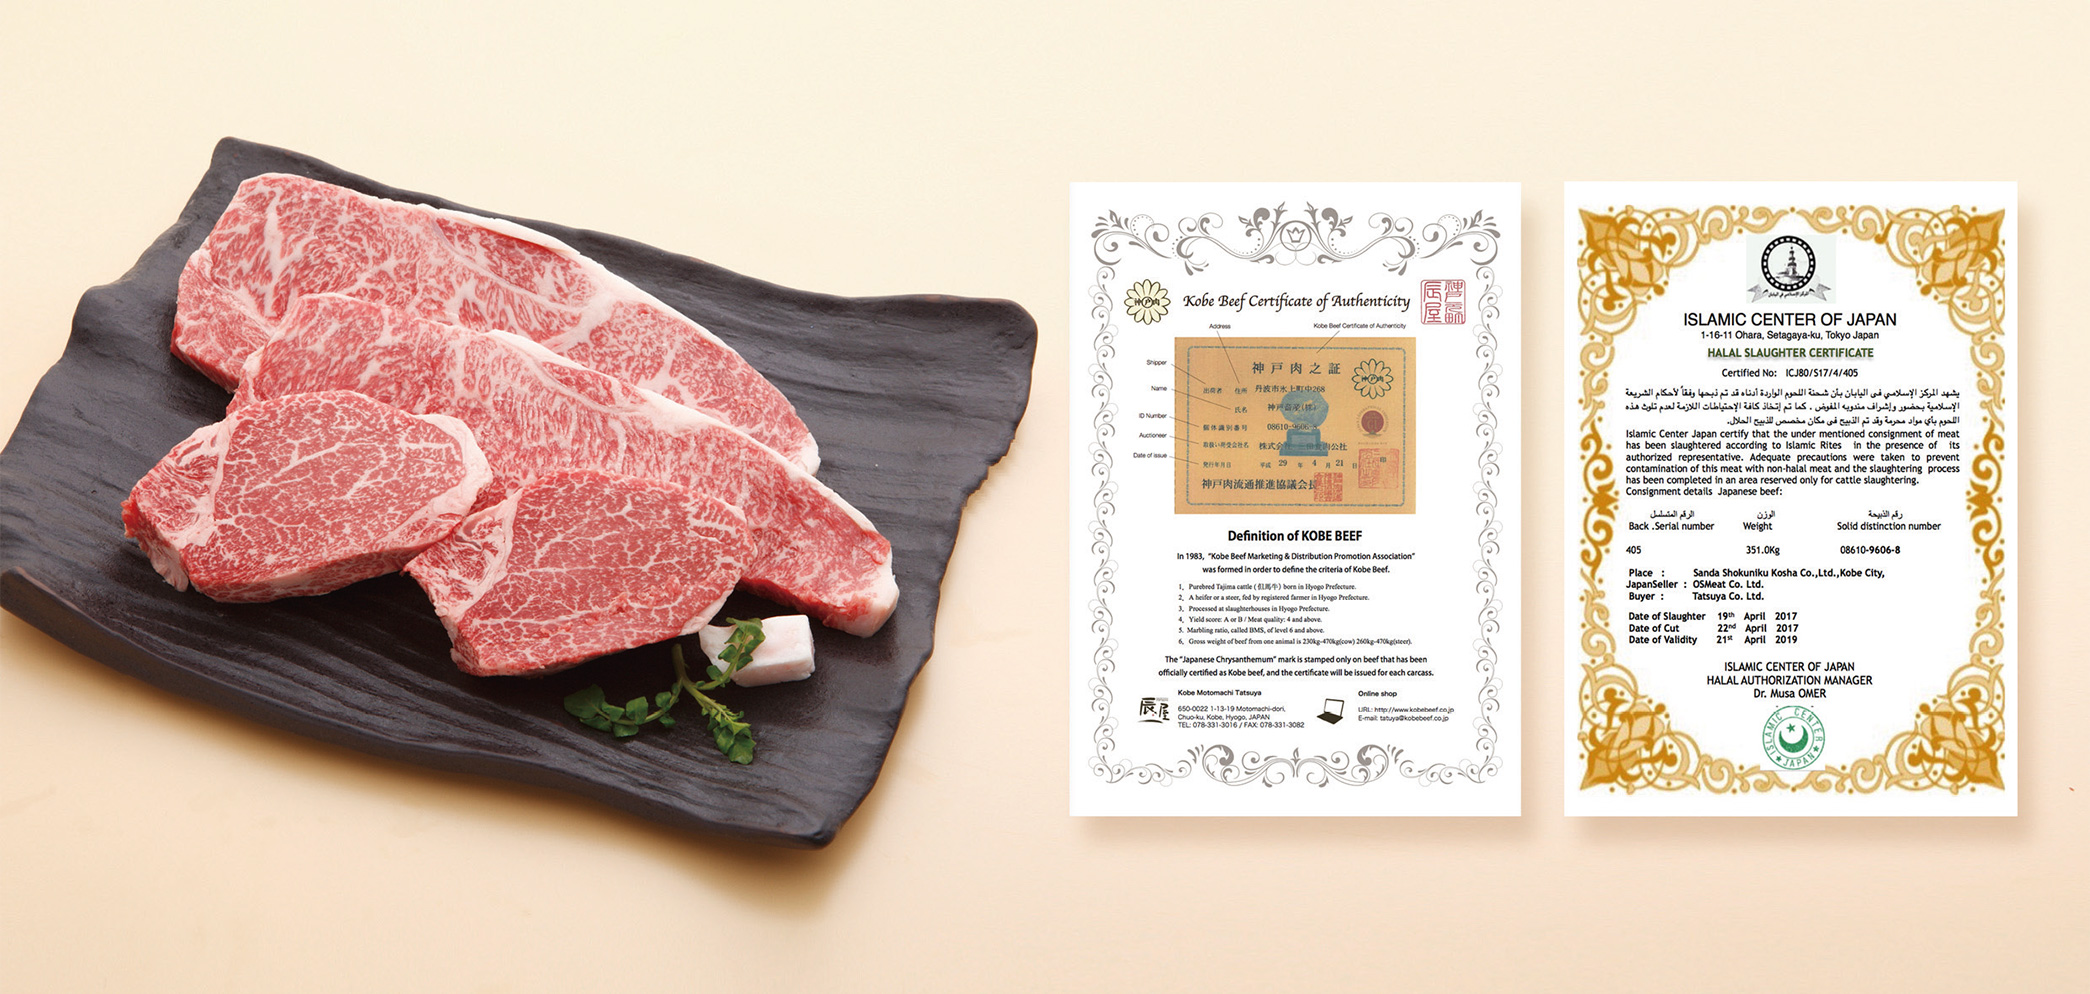 About Halal Kobe Beef